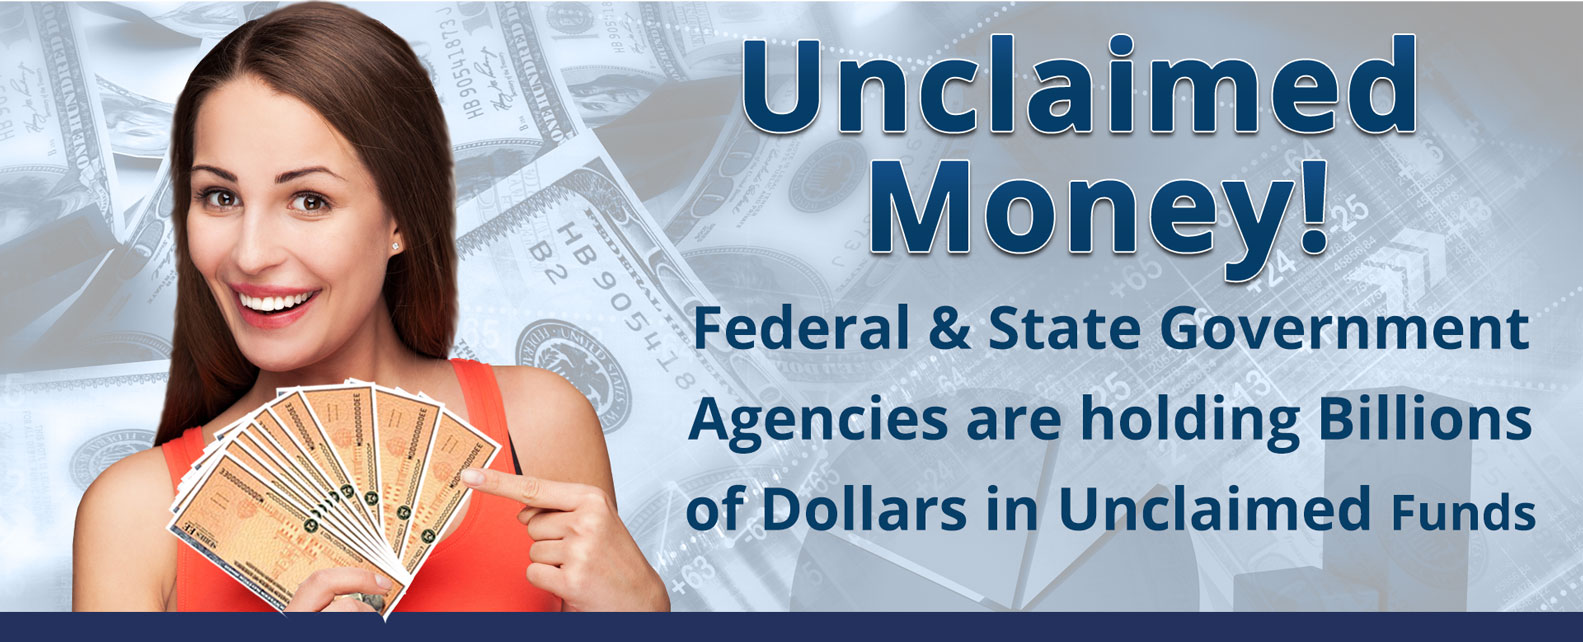 Treasury Direct Assets - Unclaimed Money